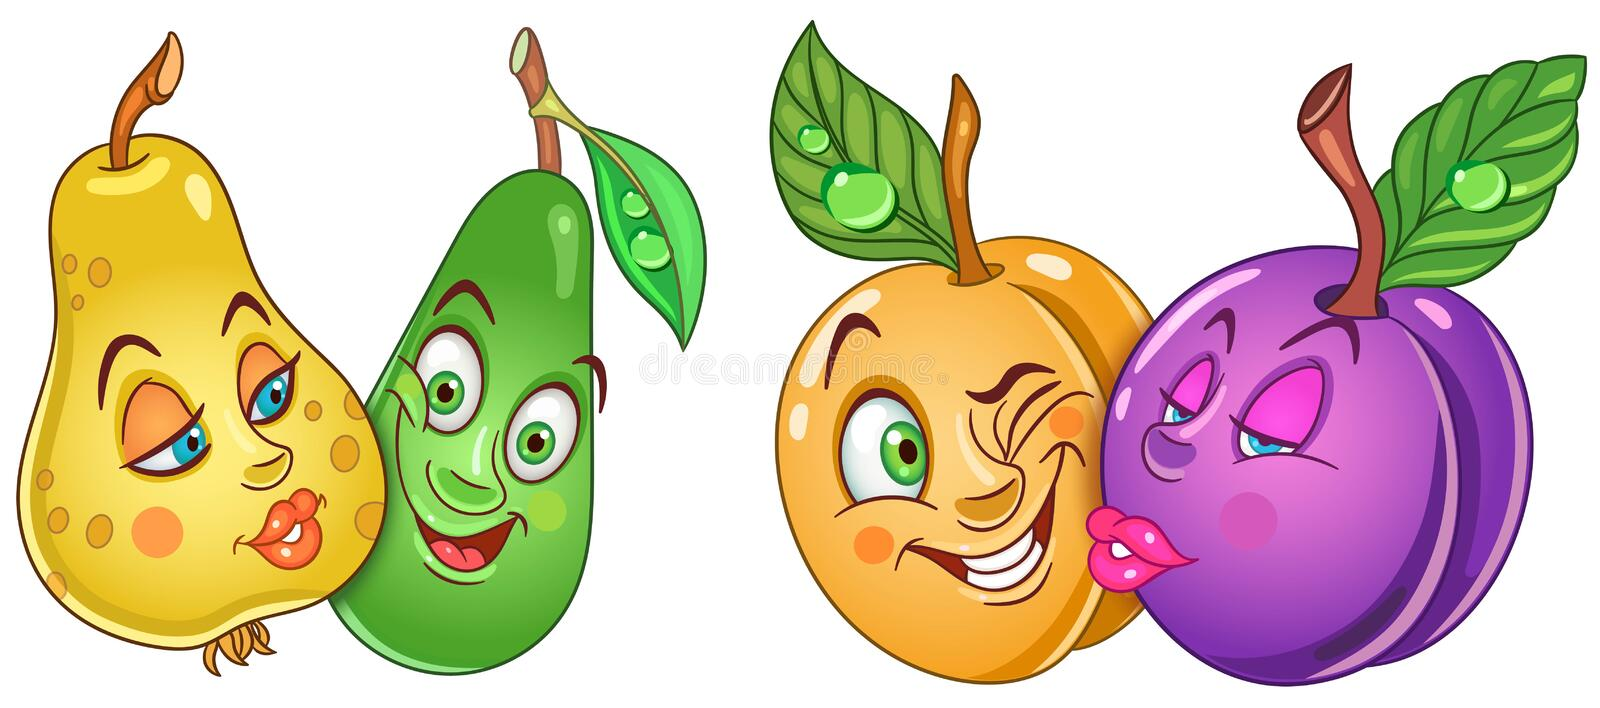 Cartoon Fruits in Love royalty free stock photography